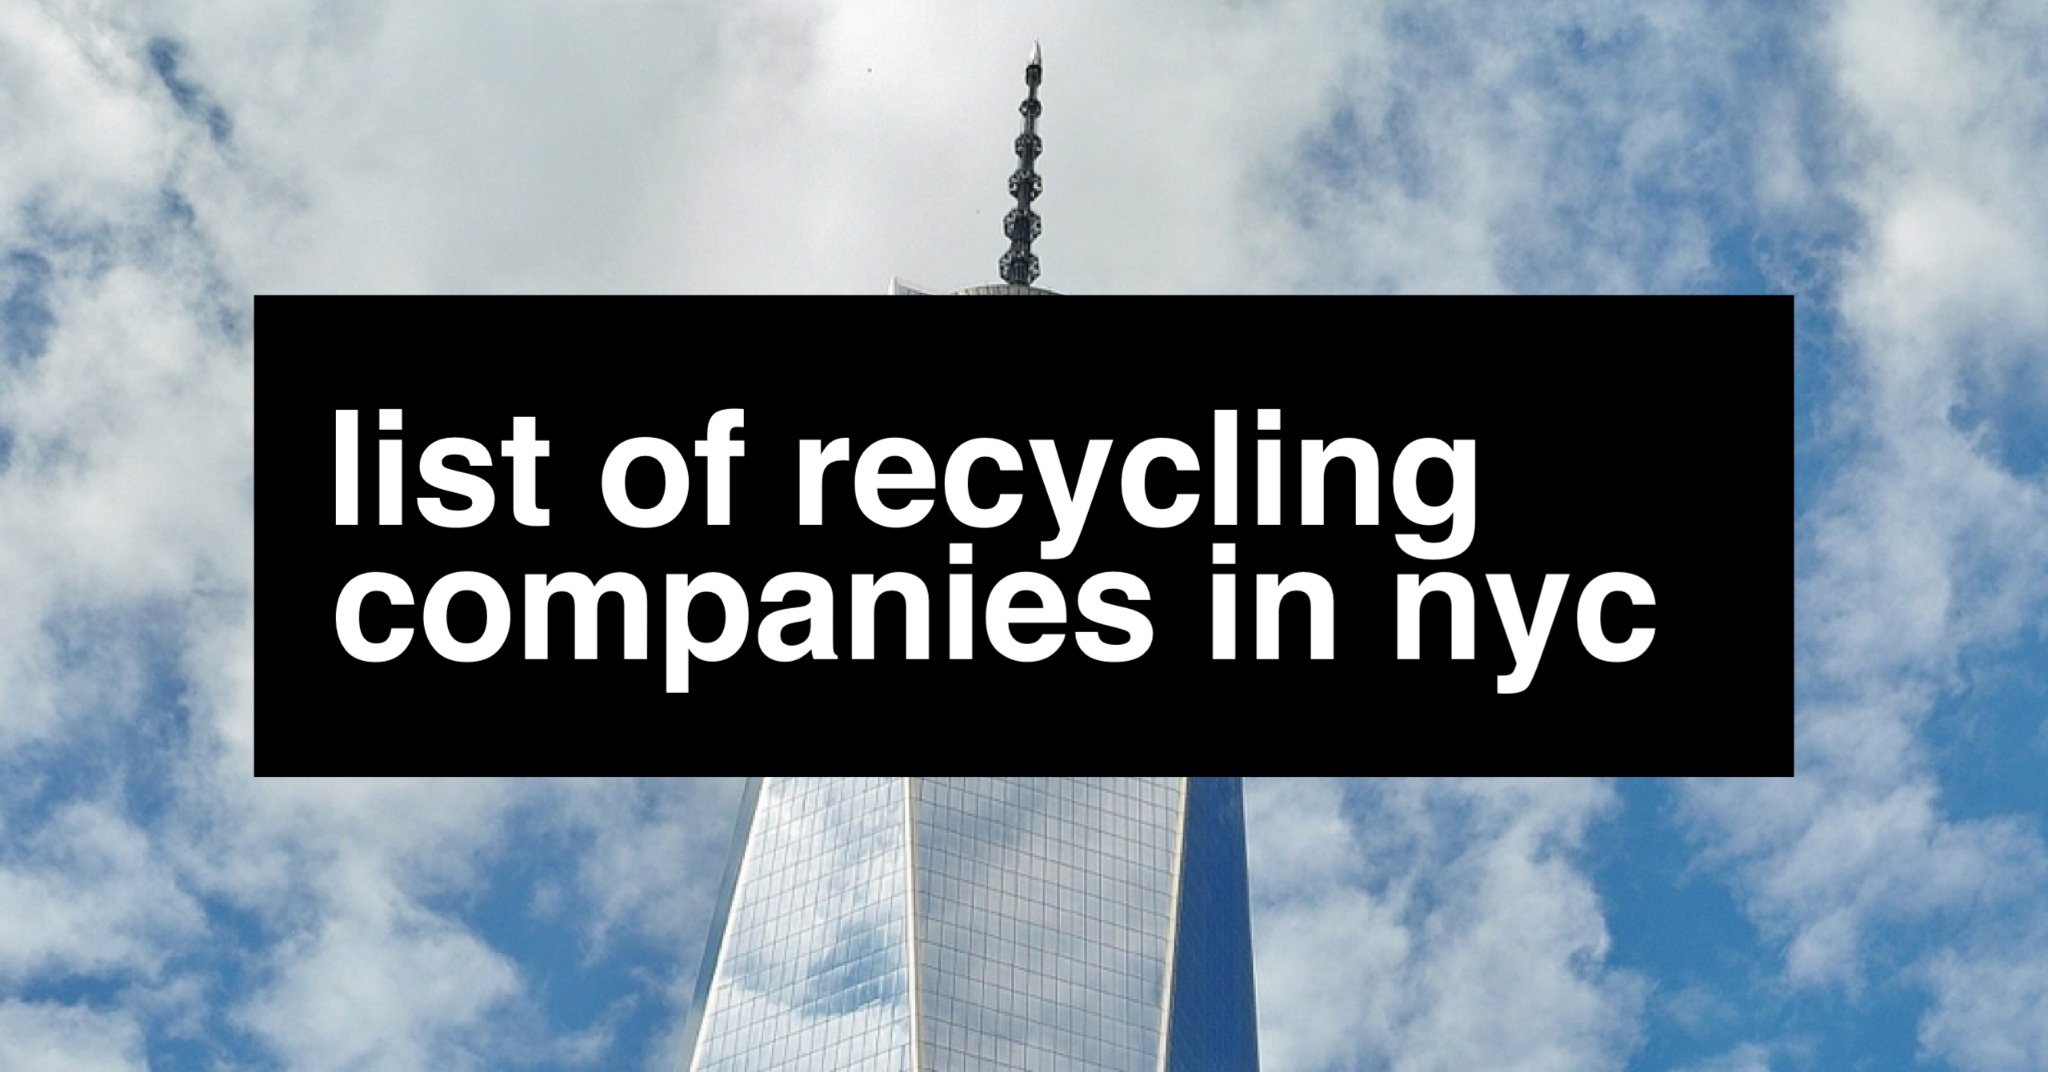 Recycling Companies in NYC list